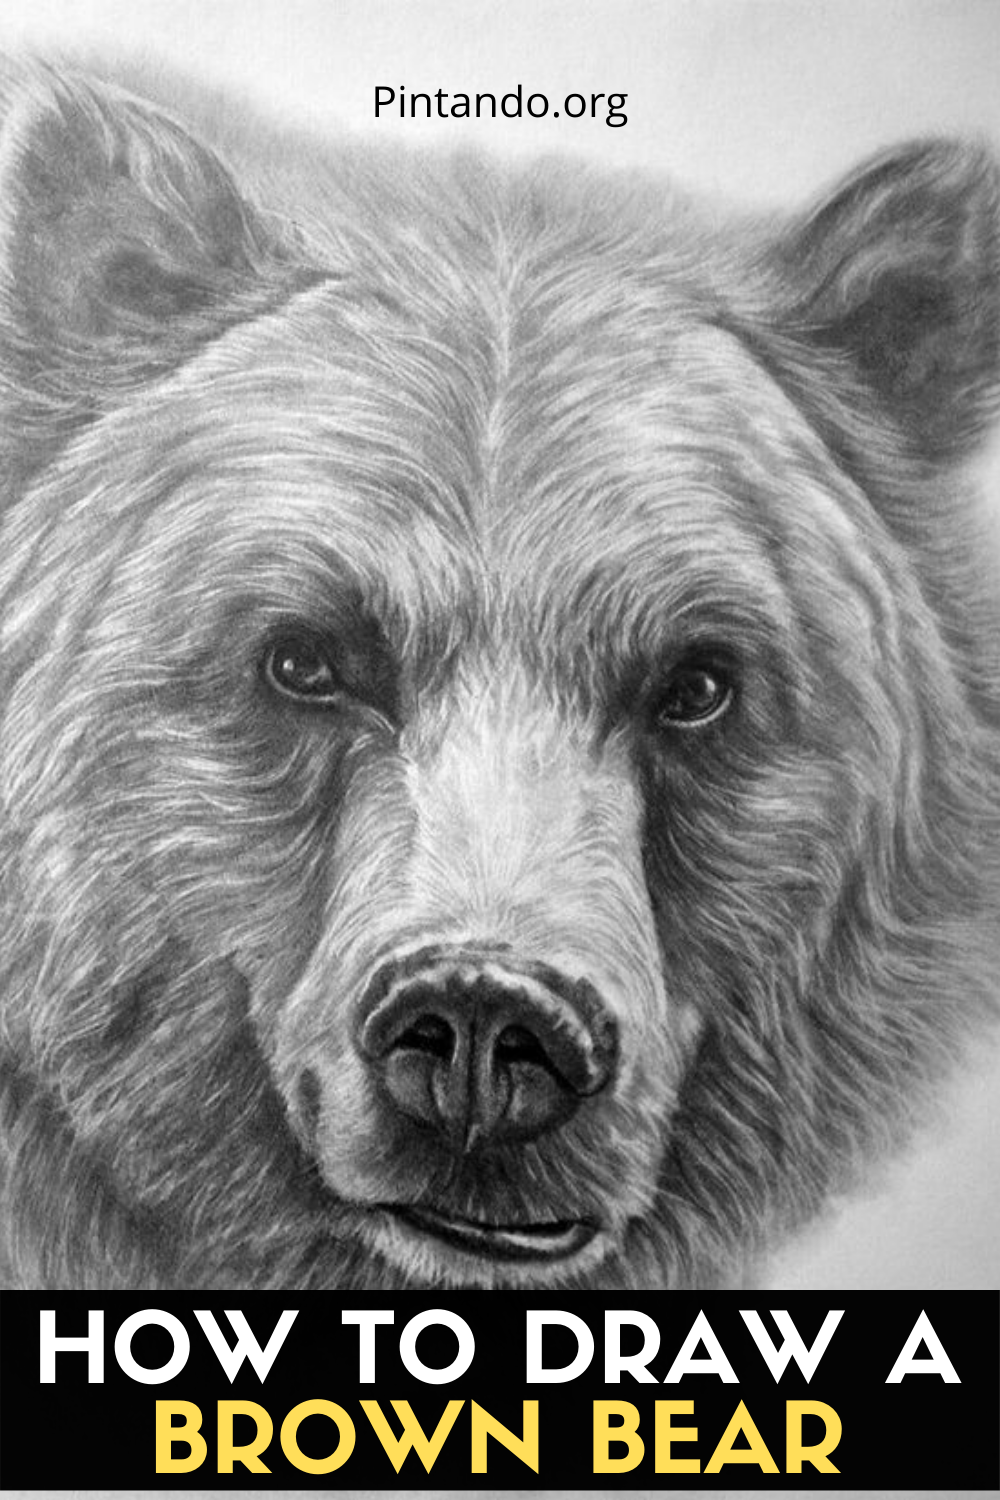 HOW TO DRAW A BROWN BEAR (1)